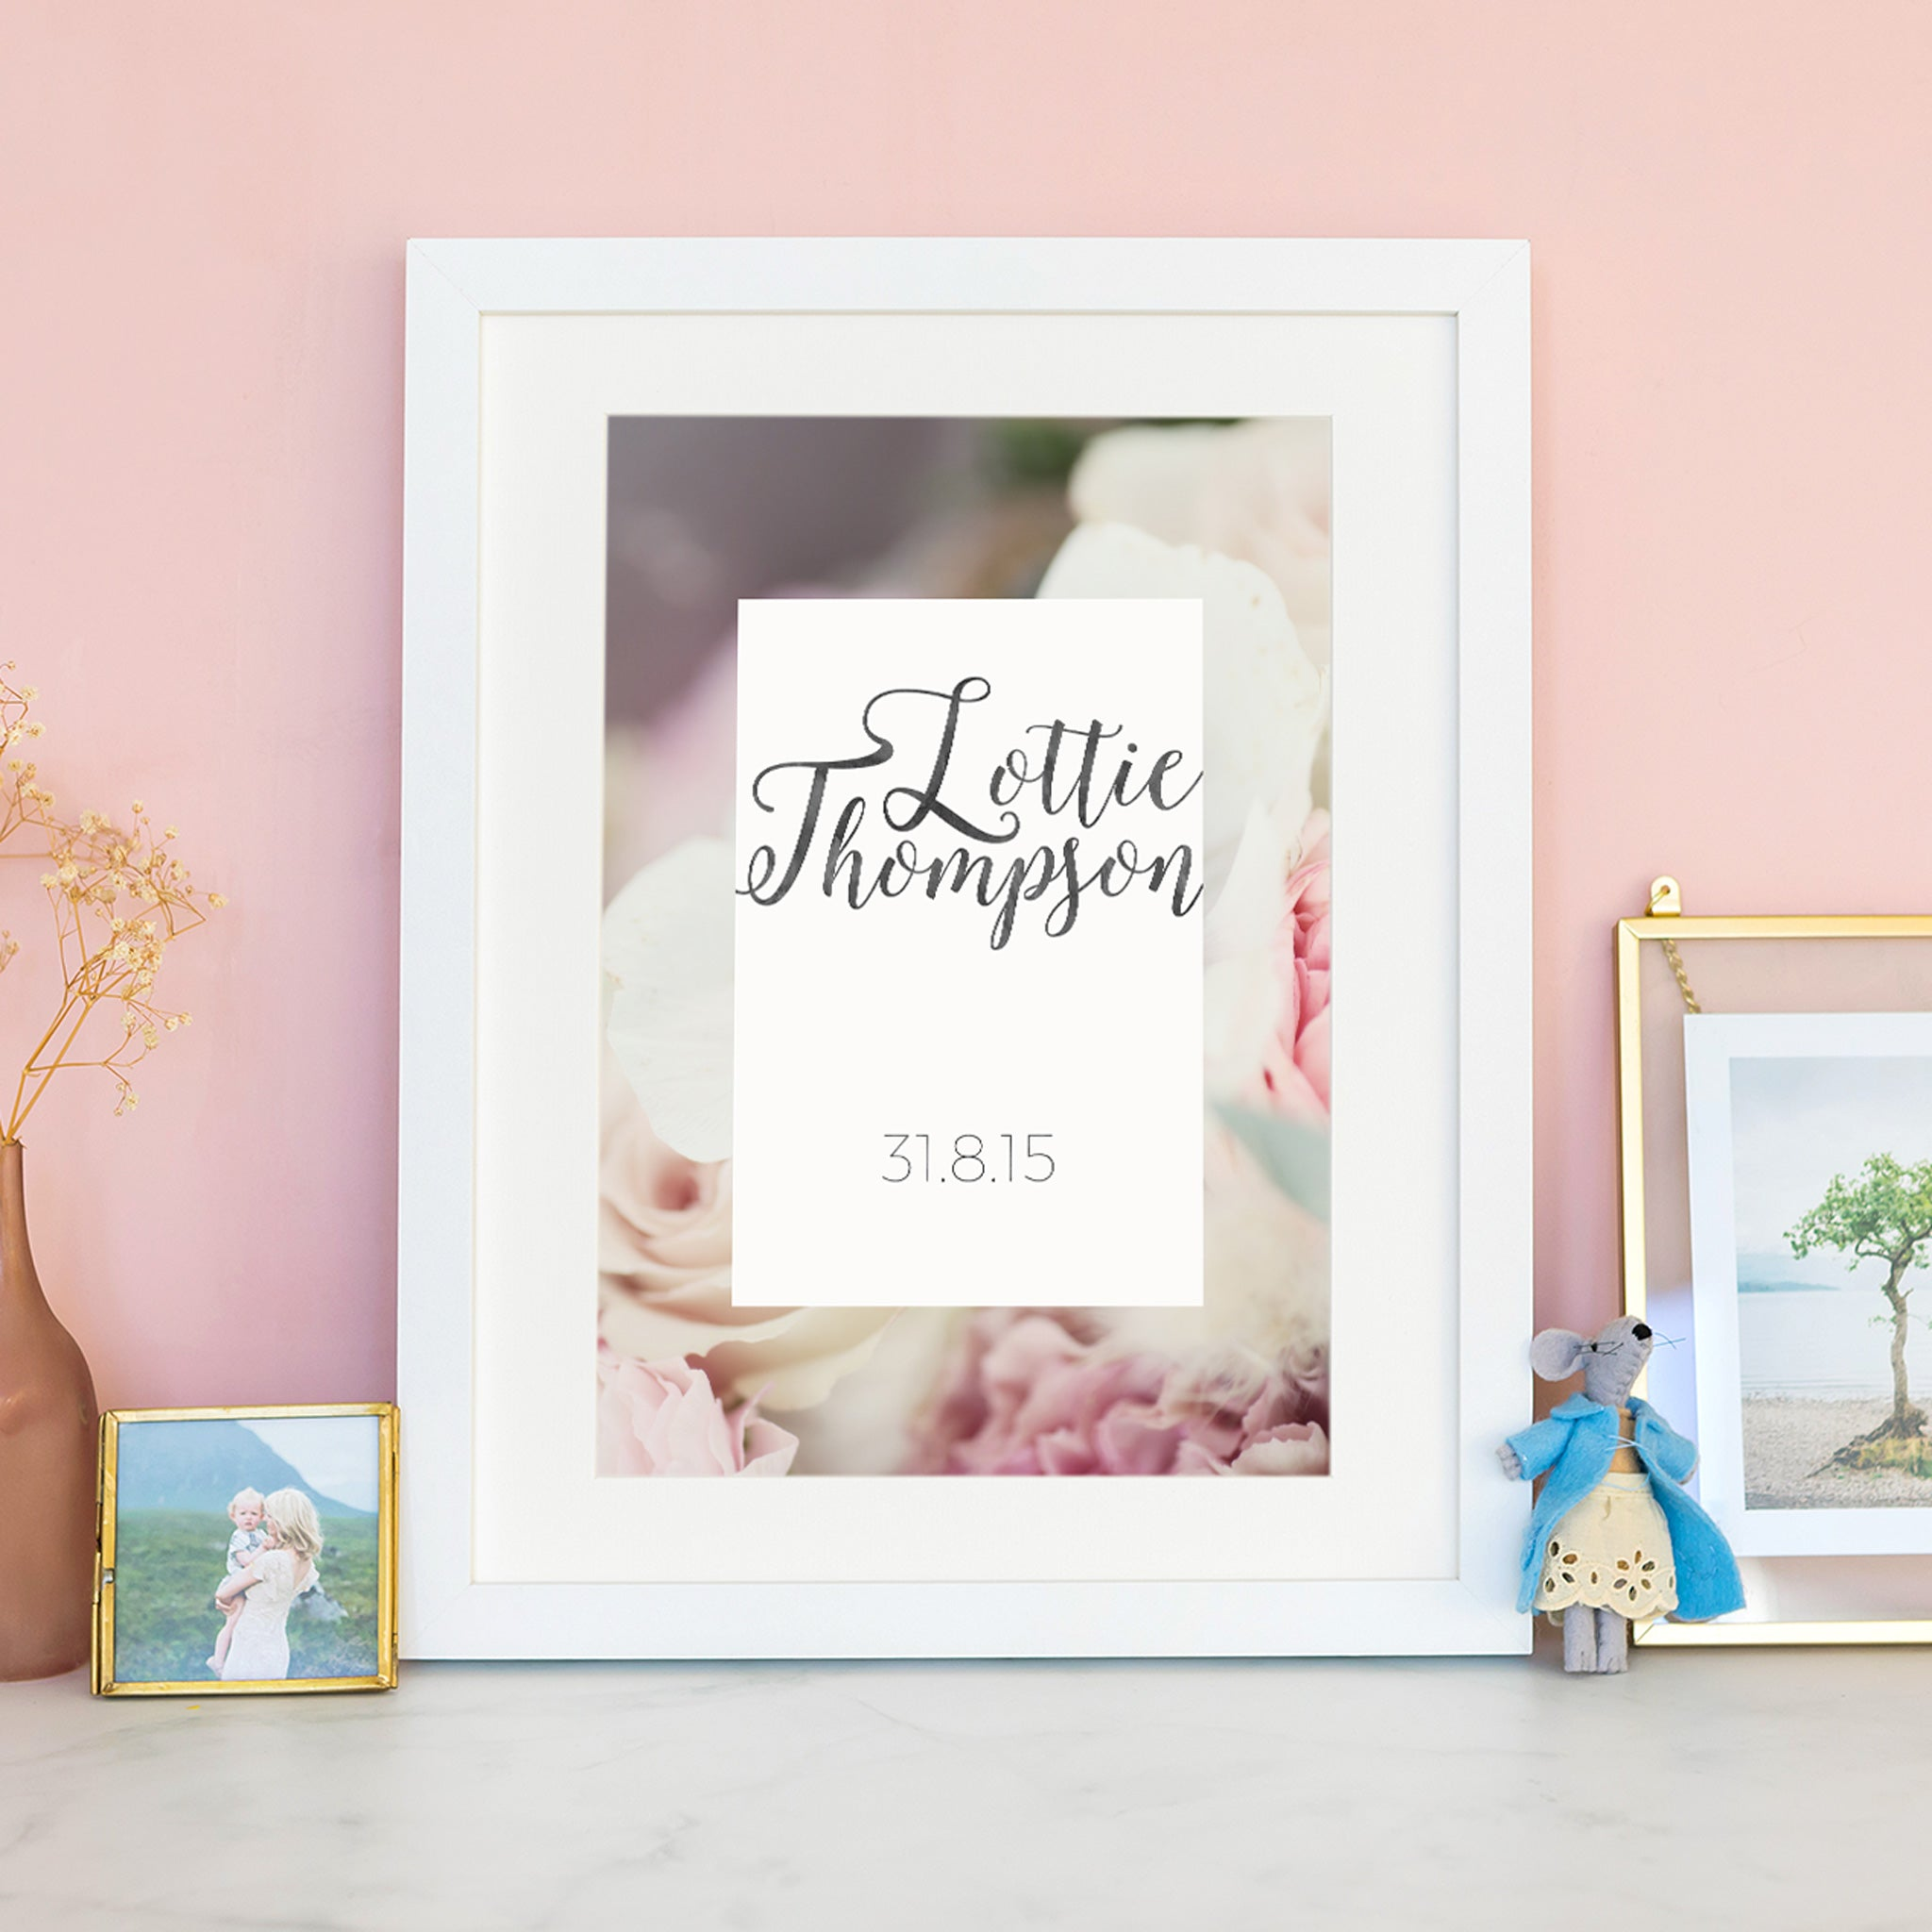 personalised keepsake name and date print with floral background and modern typography.